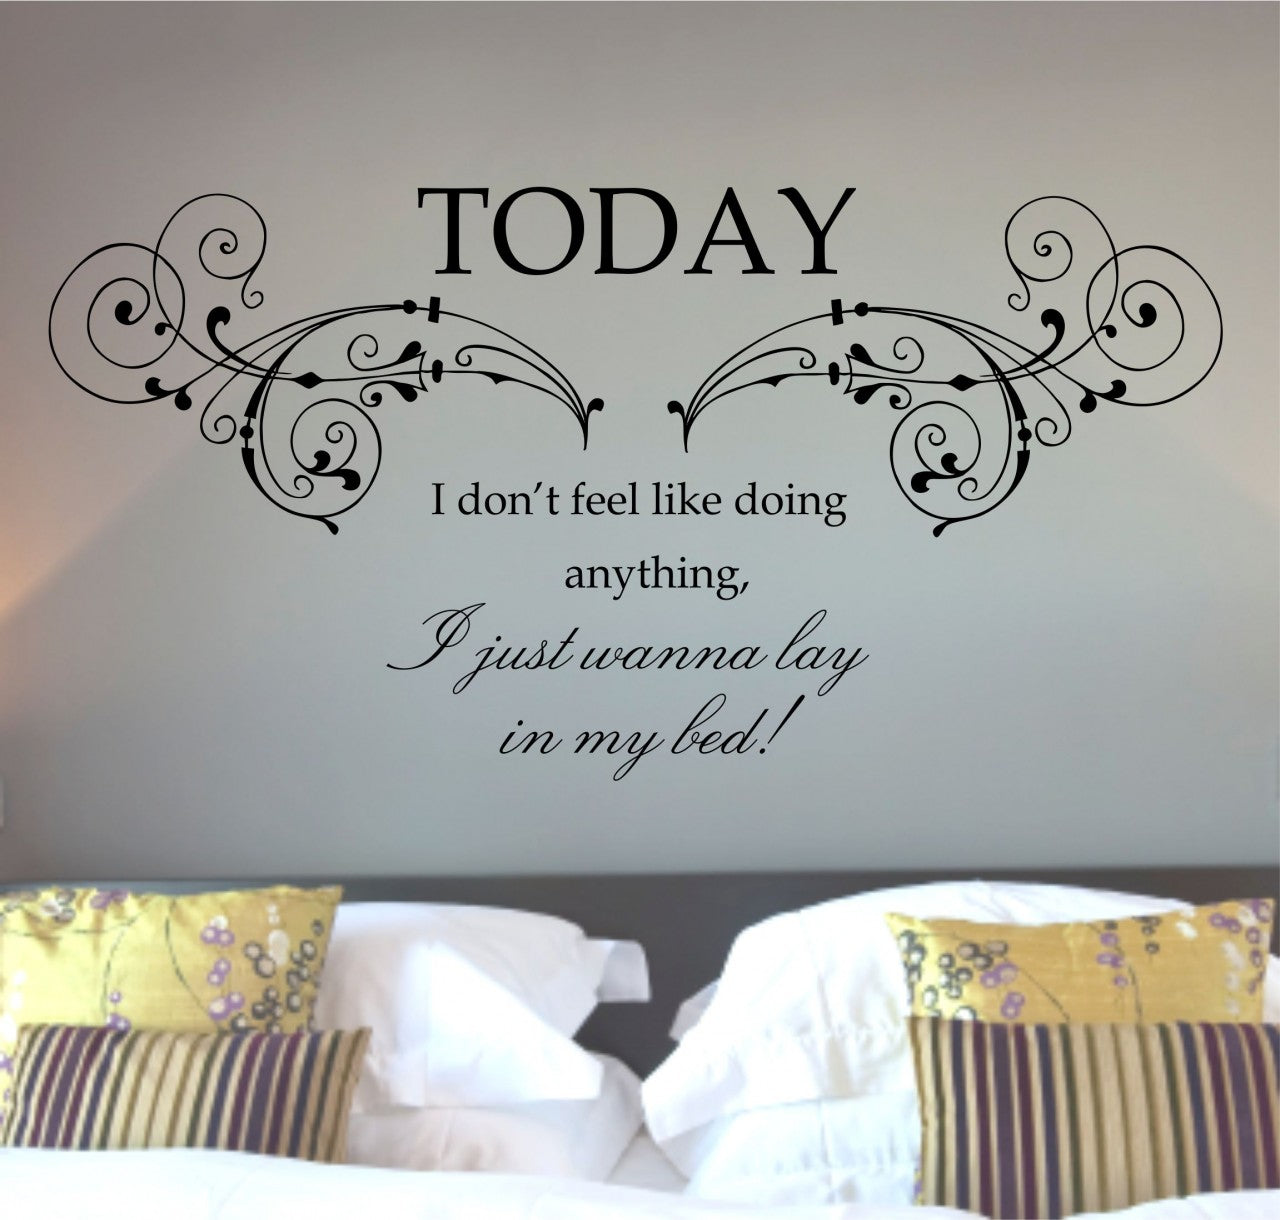 A wall decal in text saying I just wanna lay in my bed